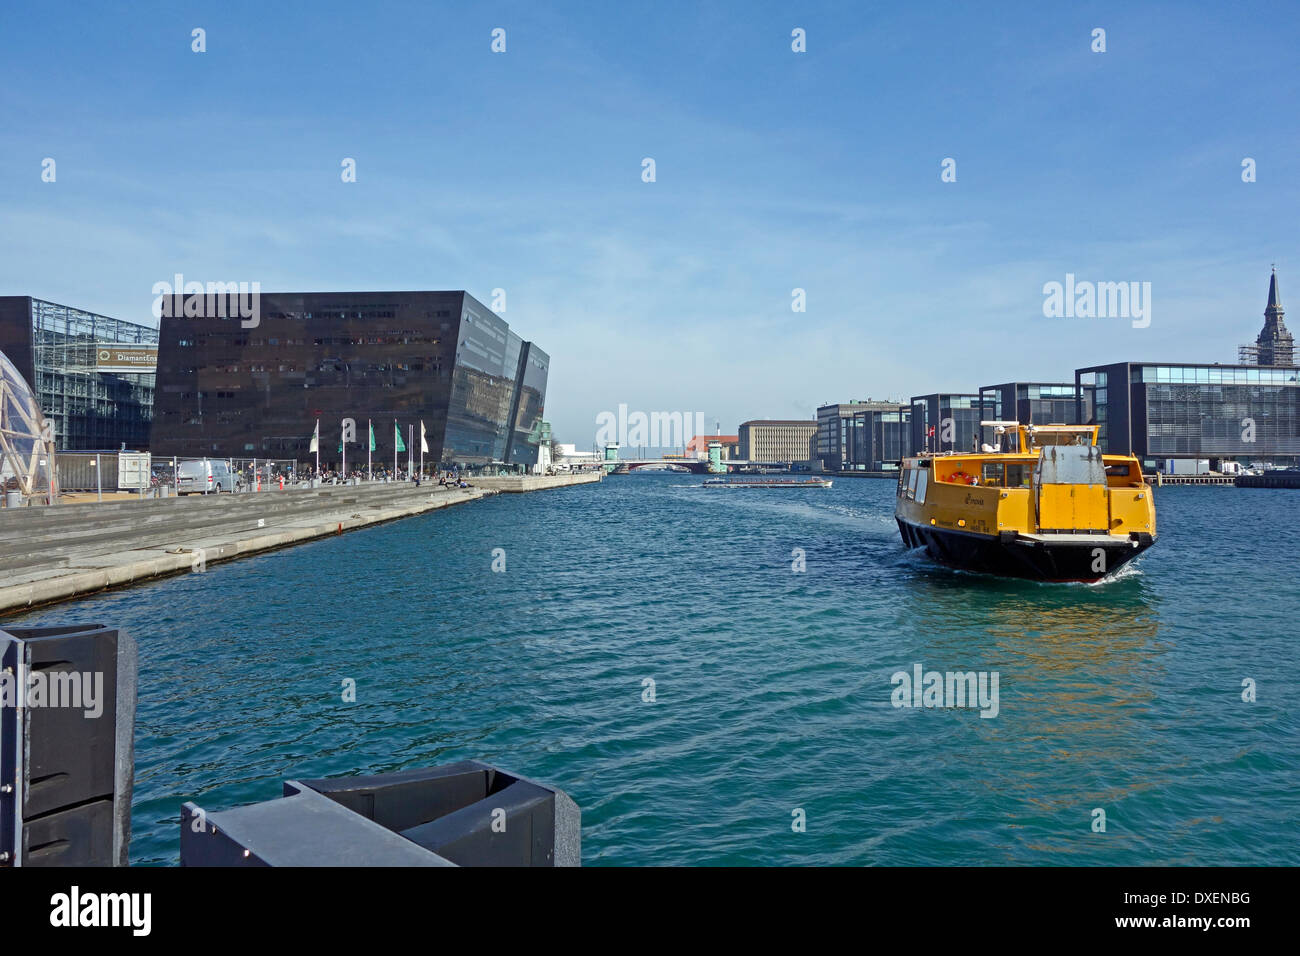 New Movia water bus approaches The Royal Danish Library  (the Black Diamond) stop on the waterfront in Copenhagen - Stock Image